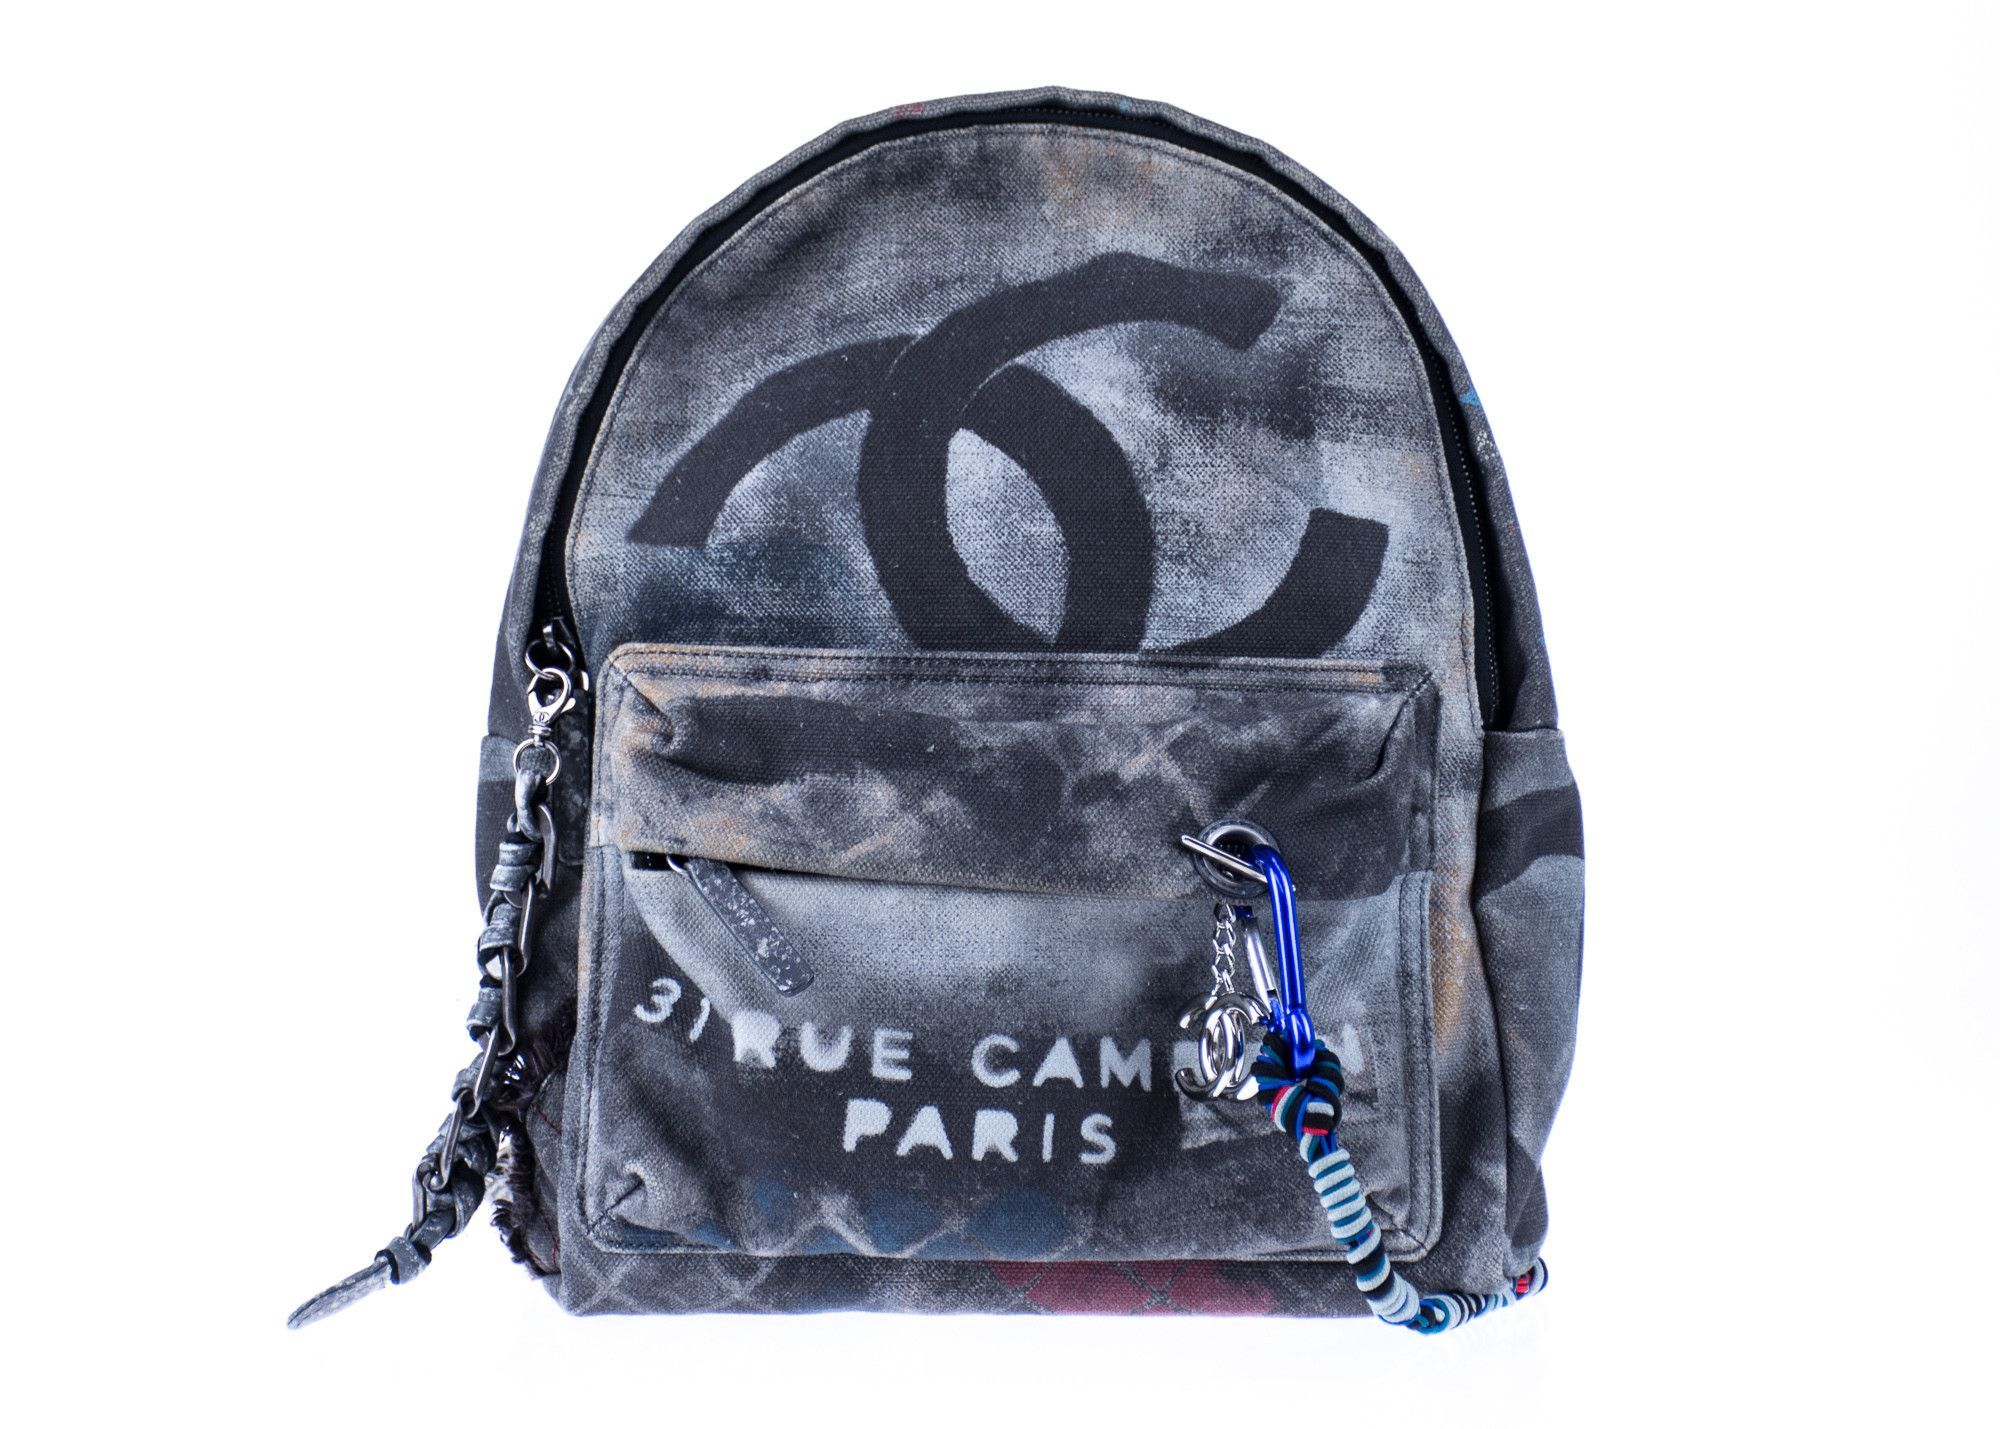 Chanel Graffiti Backpack Limited Edition Art School Runway